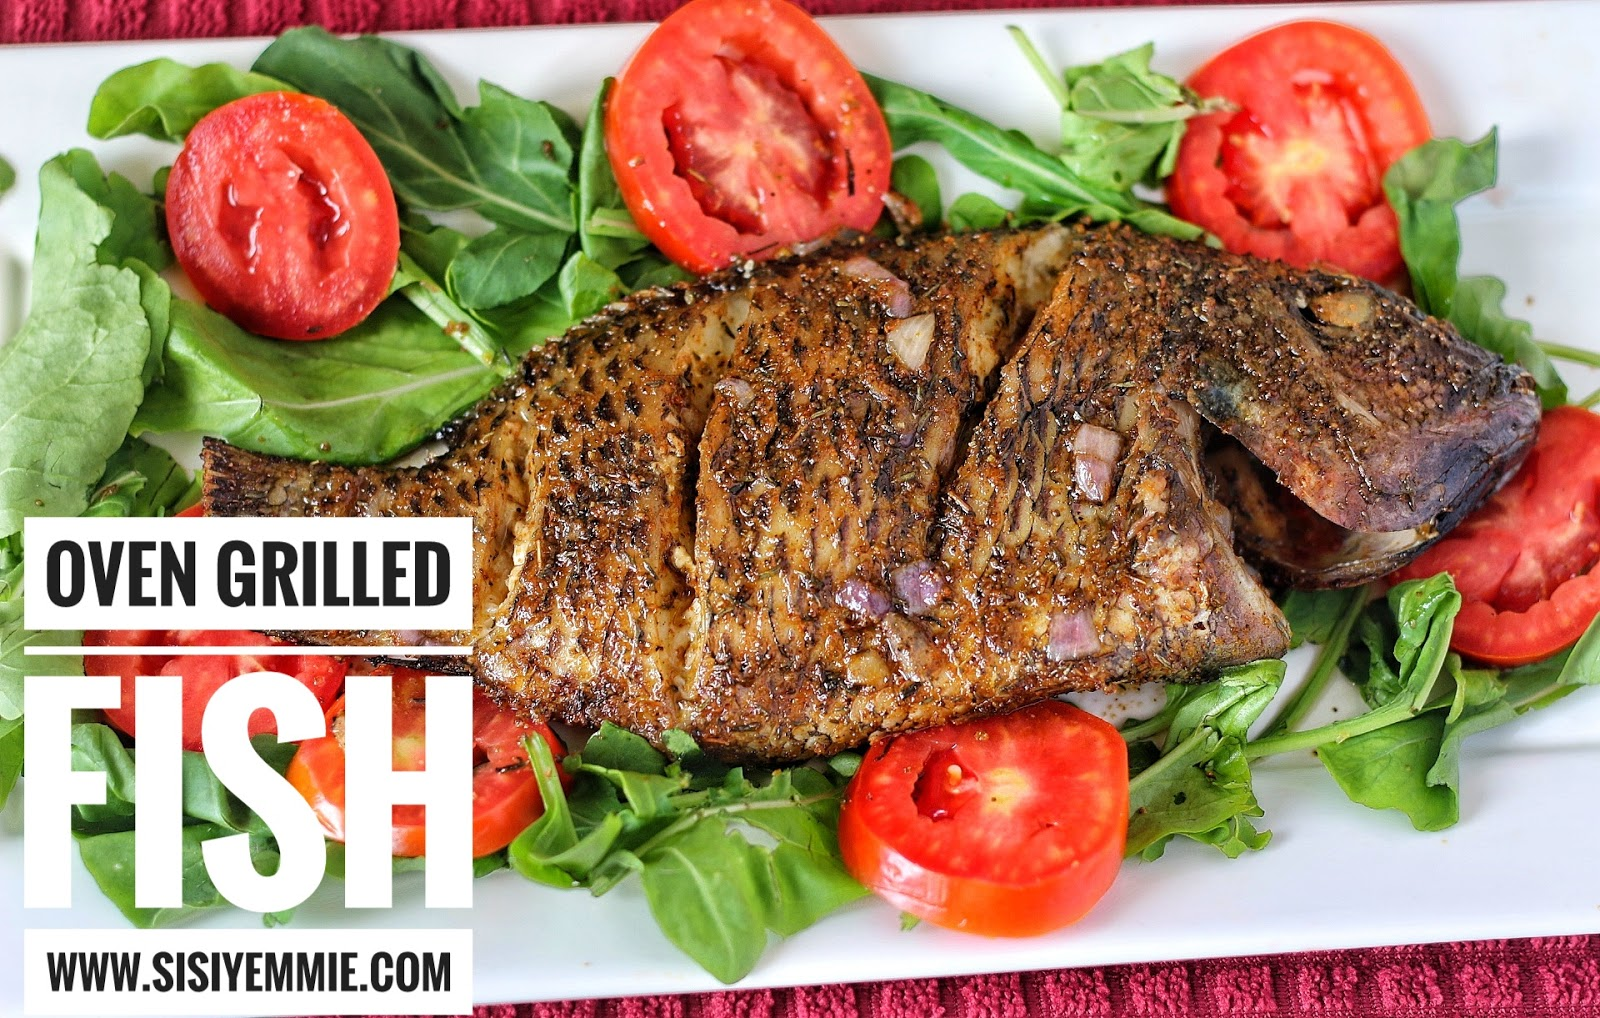 Oven grilled tilapia fish sisiyemmie nigerian food for Oven grilled fish recipes